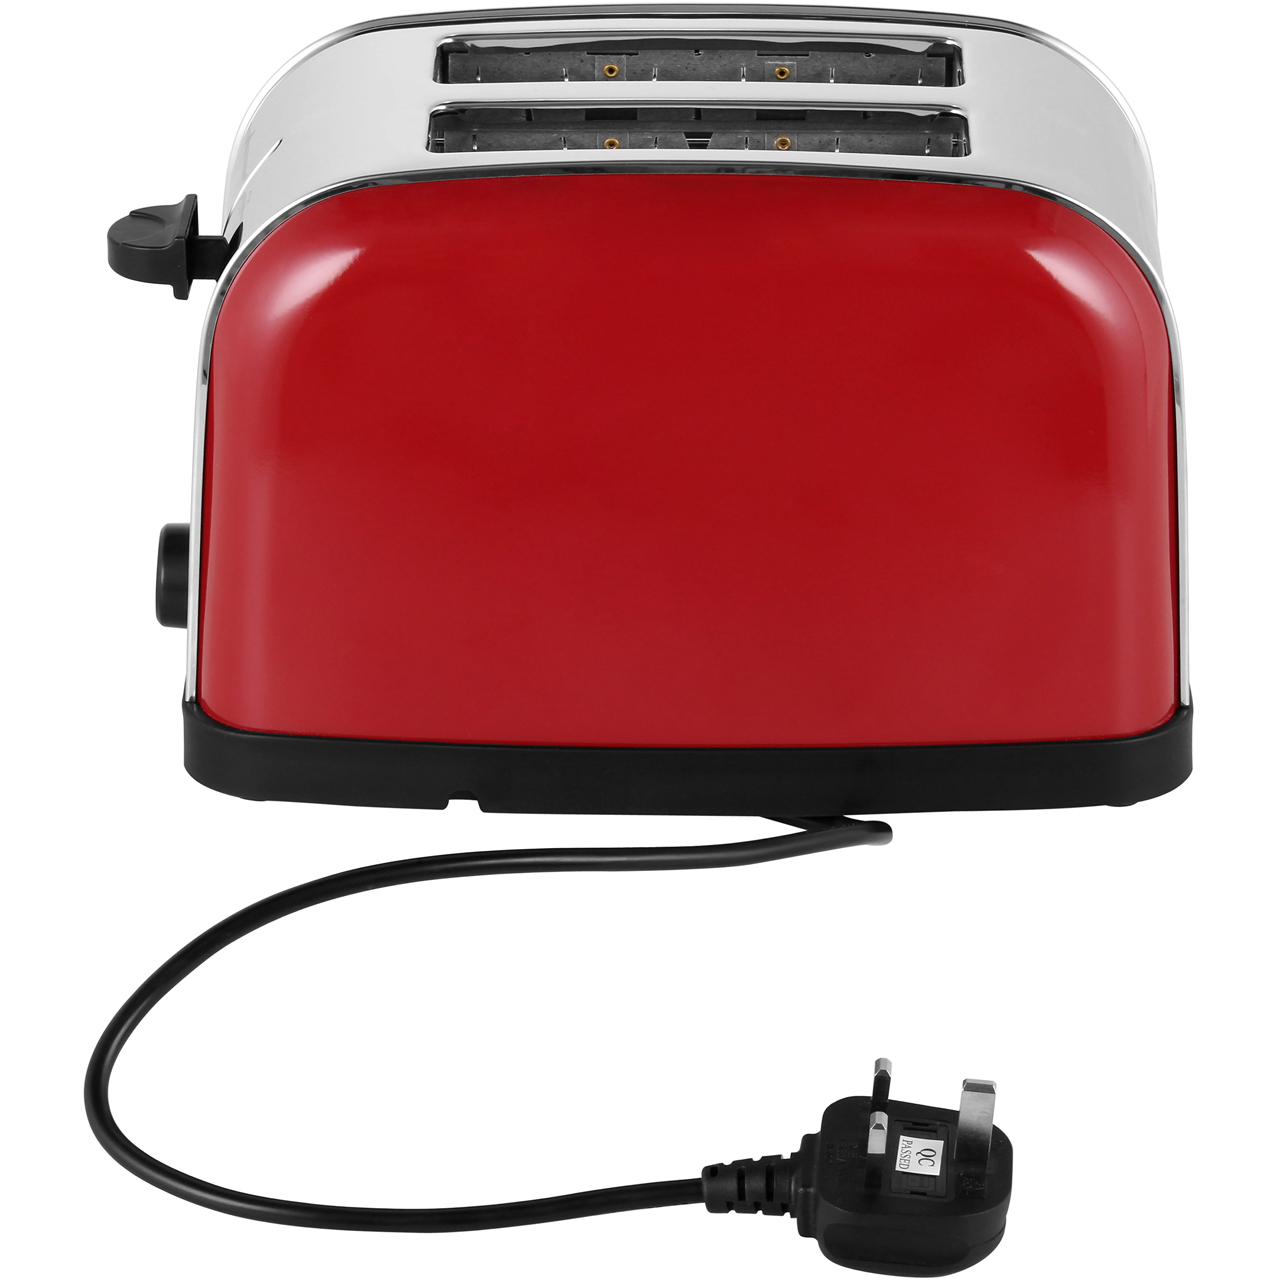 Russell Hobbs Red Dorchester 2-Slice Wide Slots Toaster Stainless Steel NEW